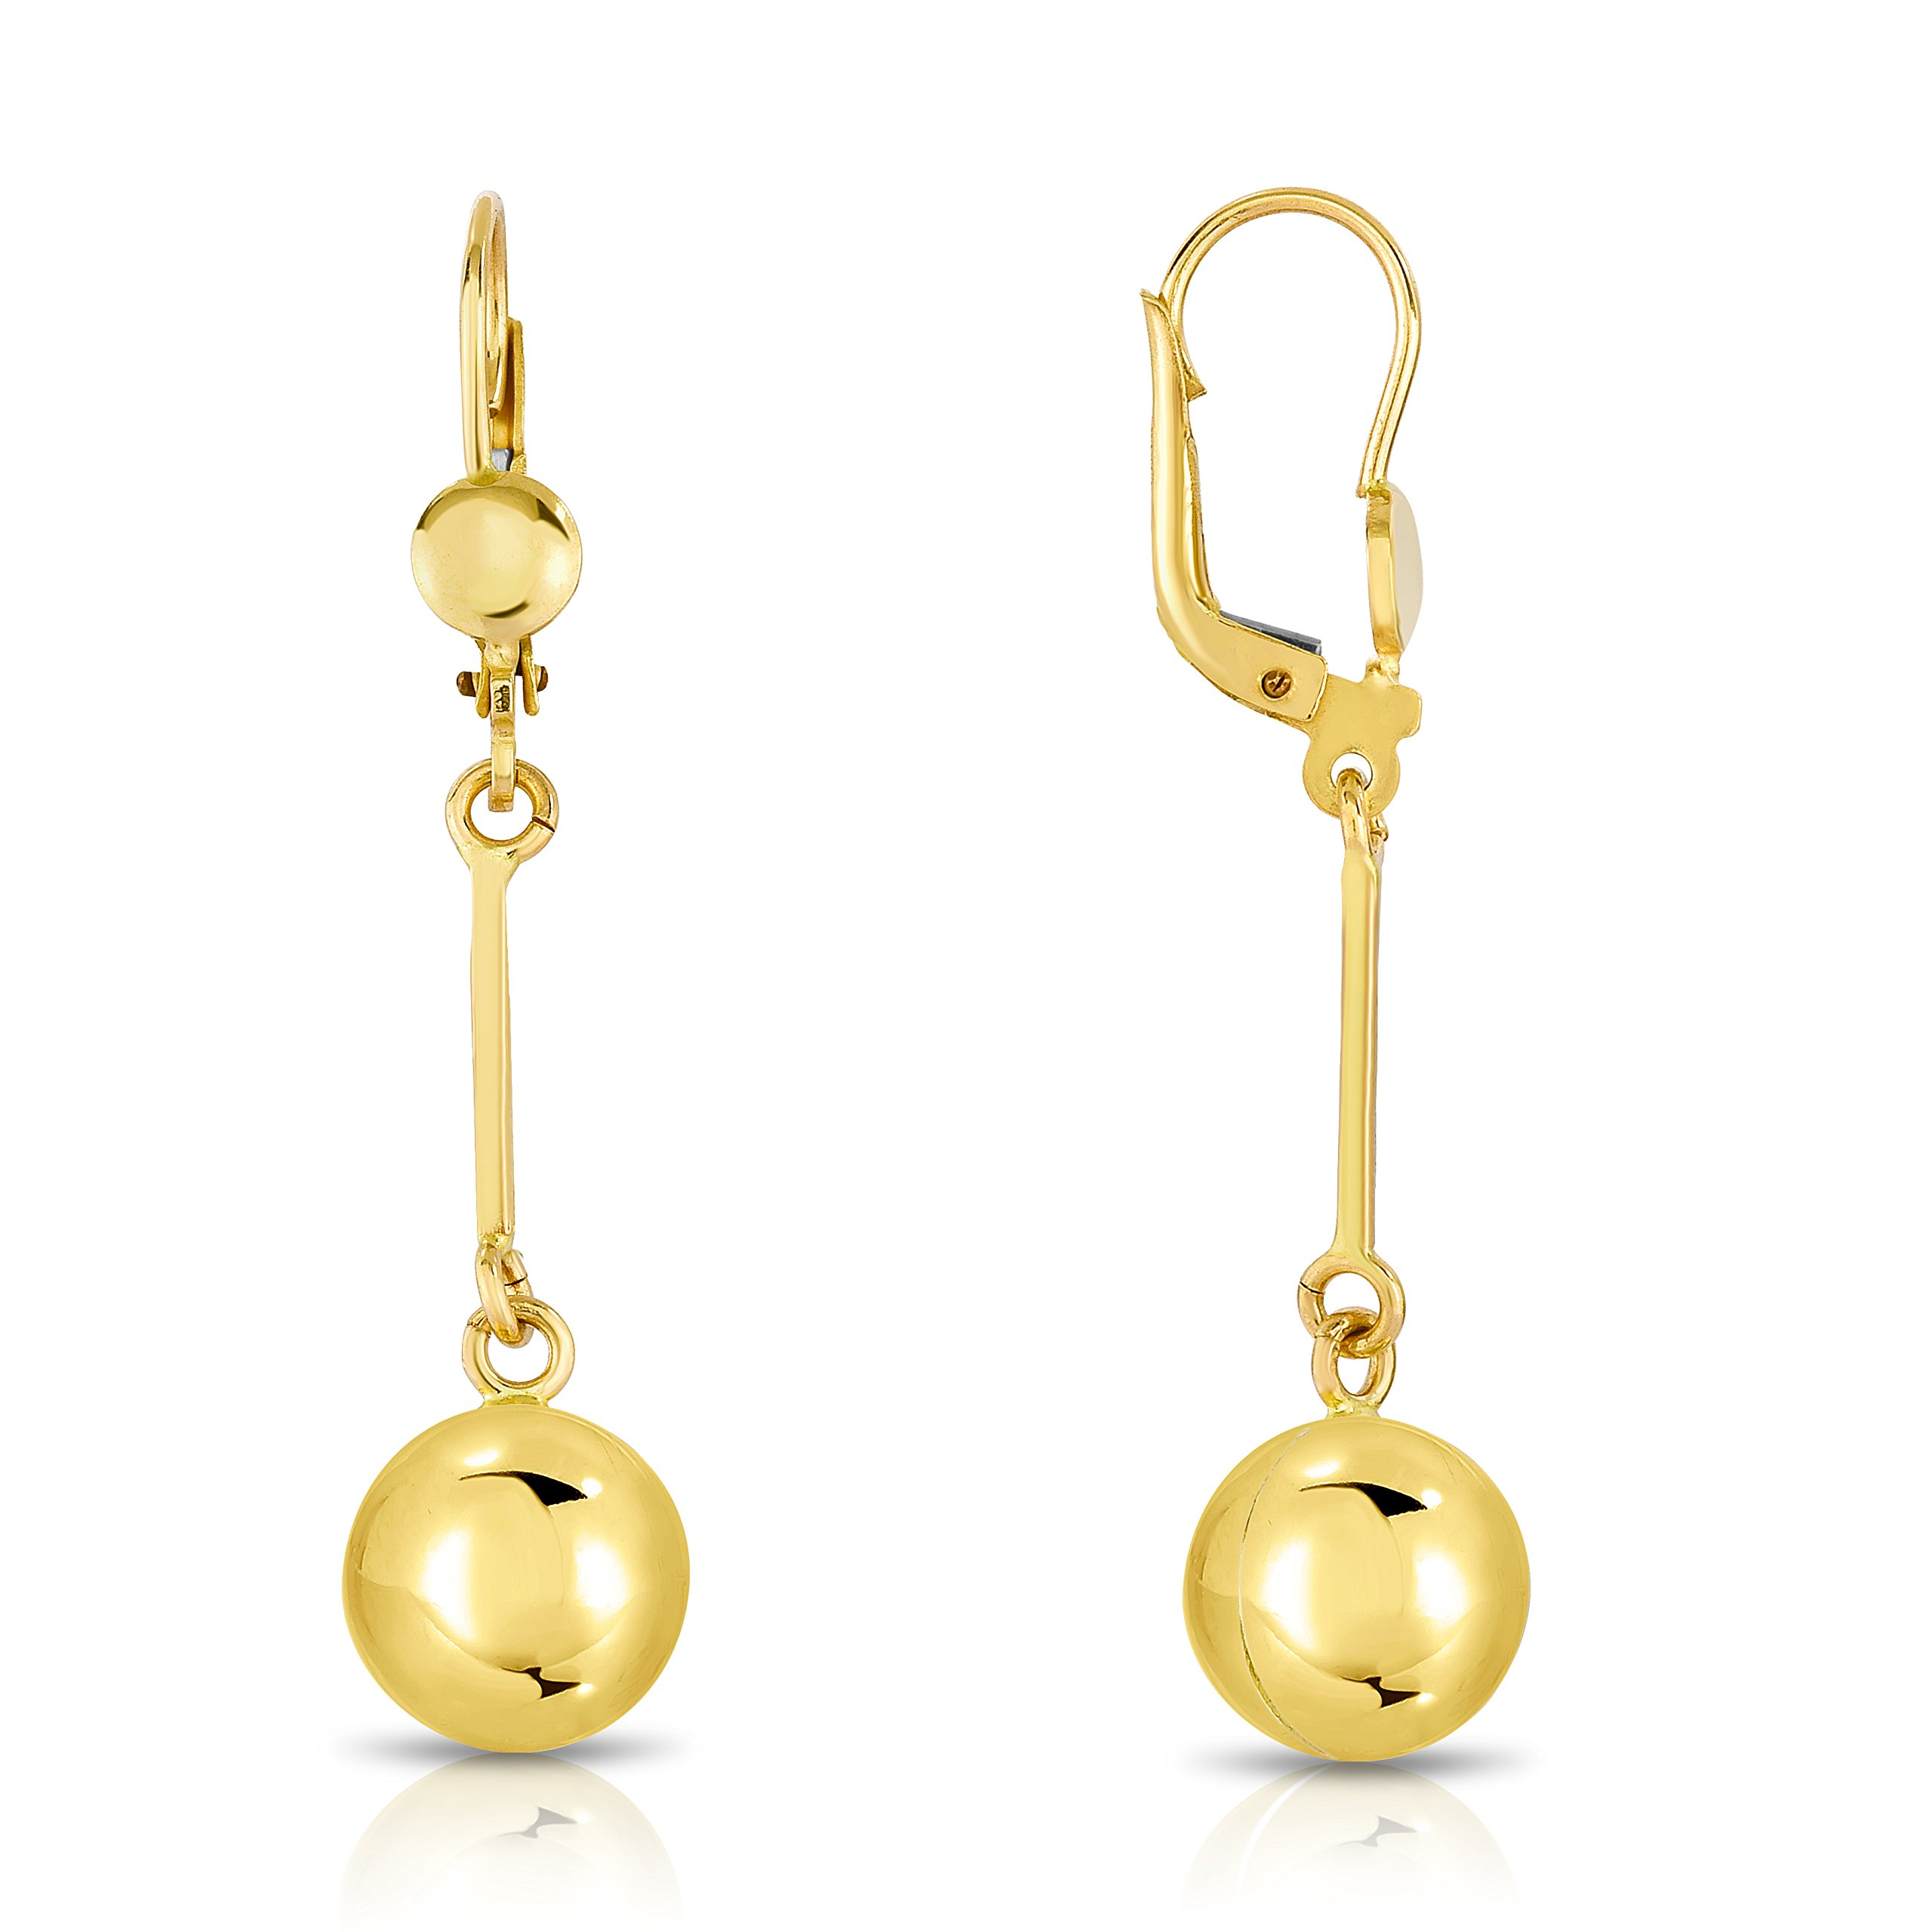 MCS Jewelry 10 Karat Yellow Gold Leverback Drop Ball Dangling Earrings (Length: 45 mm)